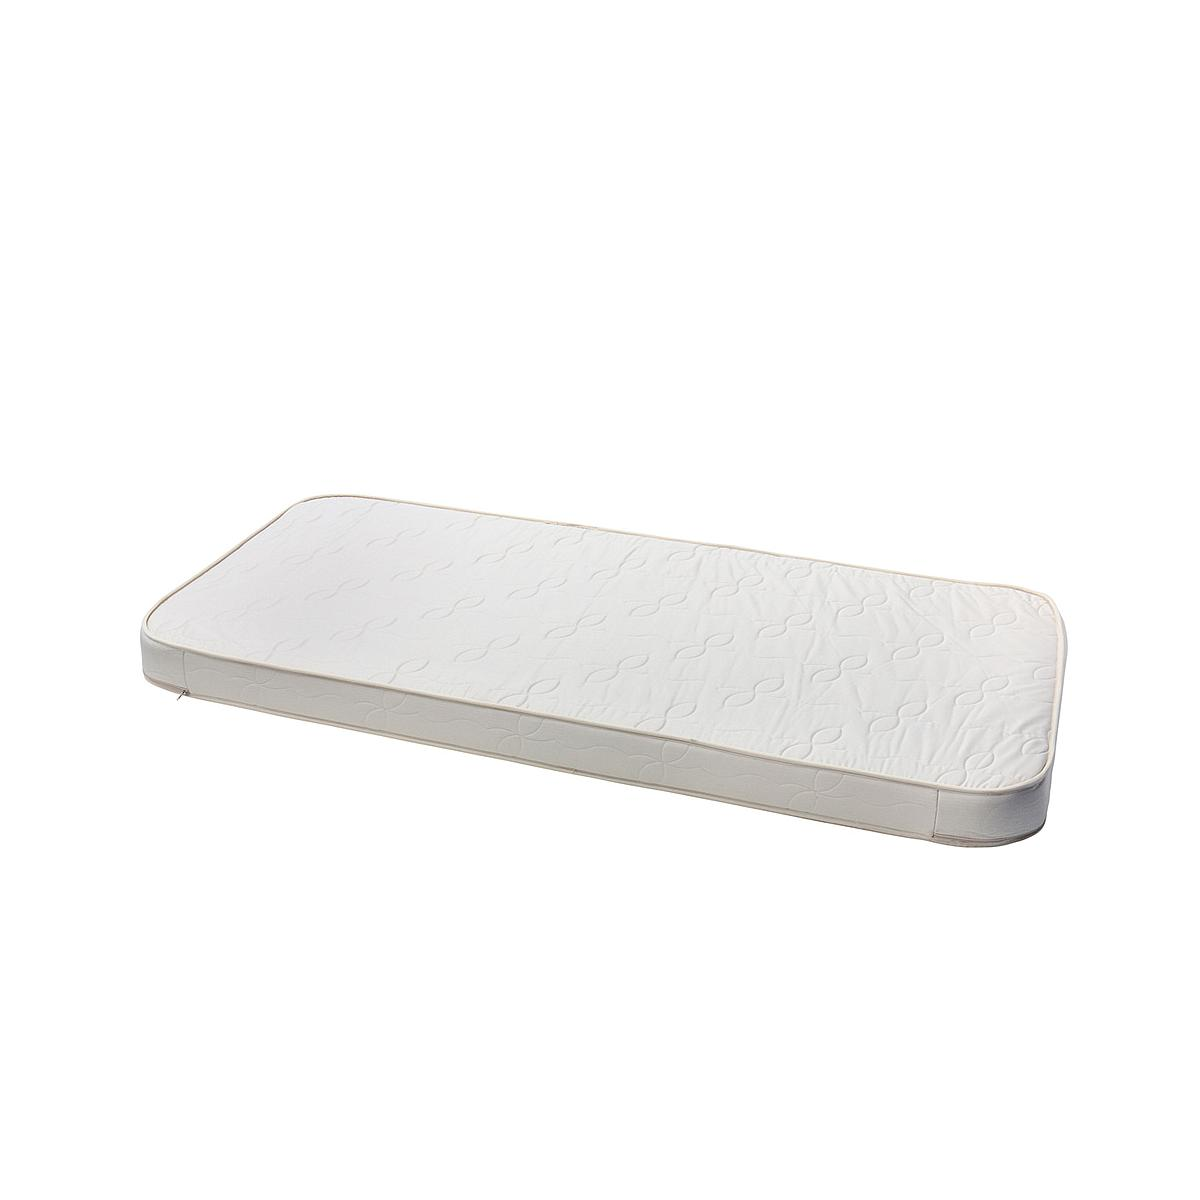 Matelas 68x162cm MINI+ WOOD Oliver Furniture